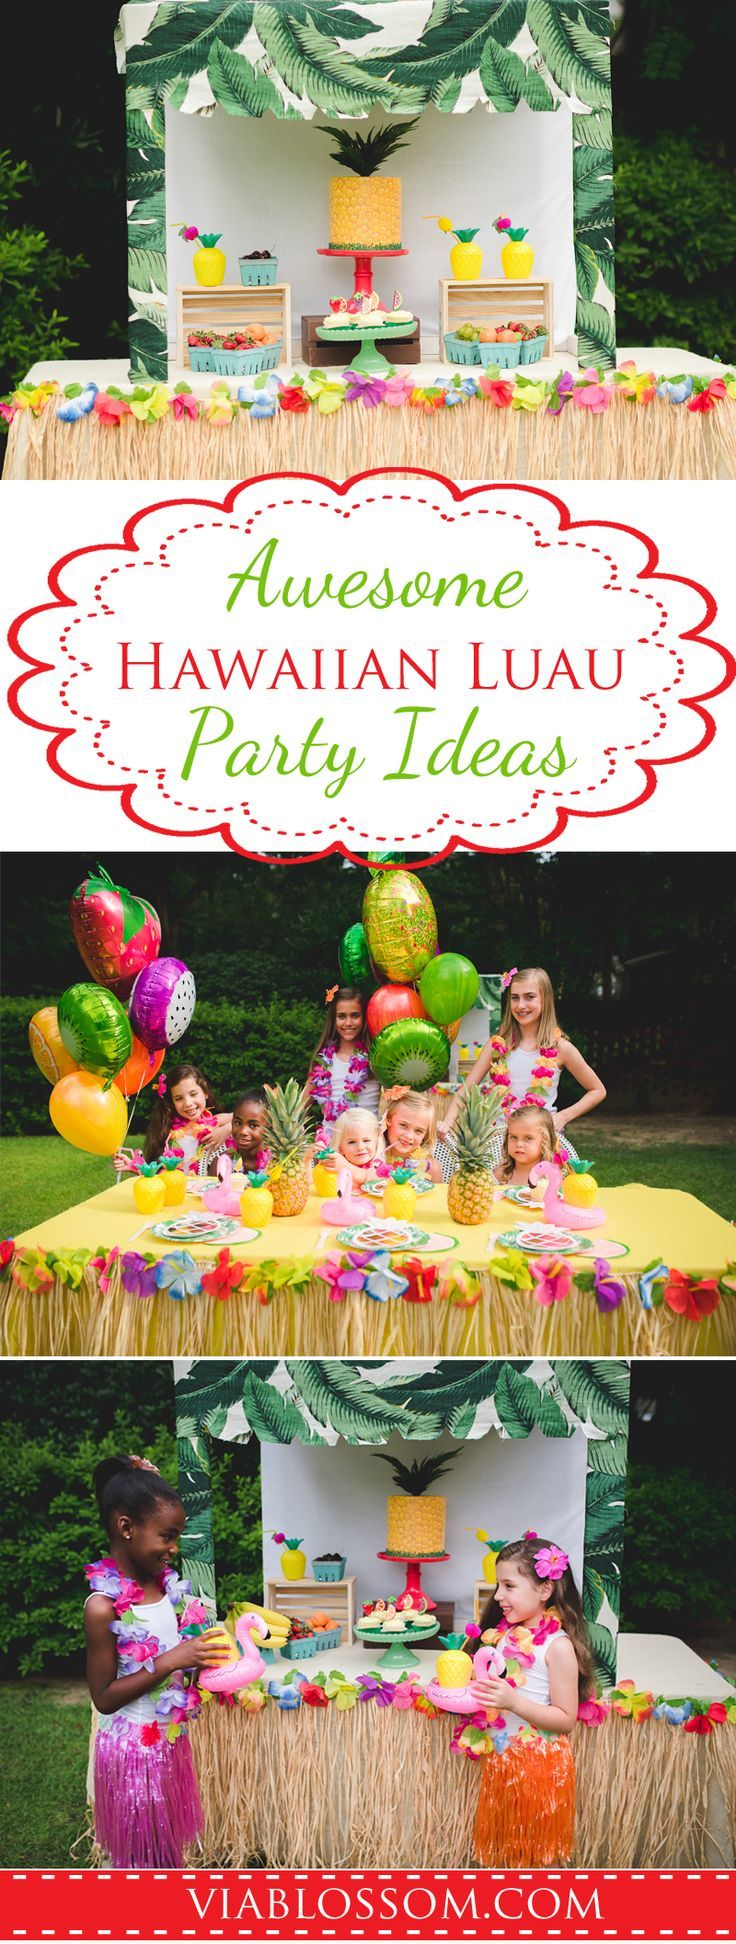 Fabulous Hawaiian Luau Party Ideas and decorations for an awesome Summer Party!! All the Luau Party Supplies for your Tropical Party or Tutti Frutti Party or Moana Party!